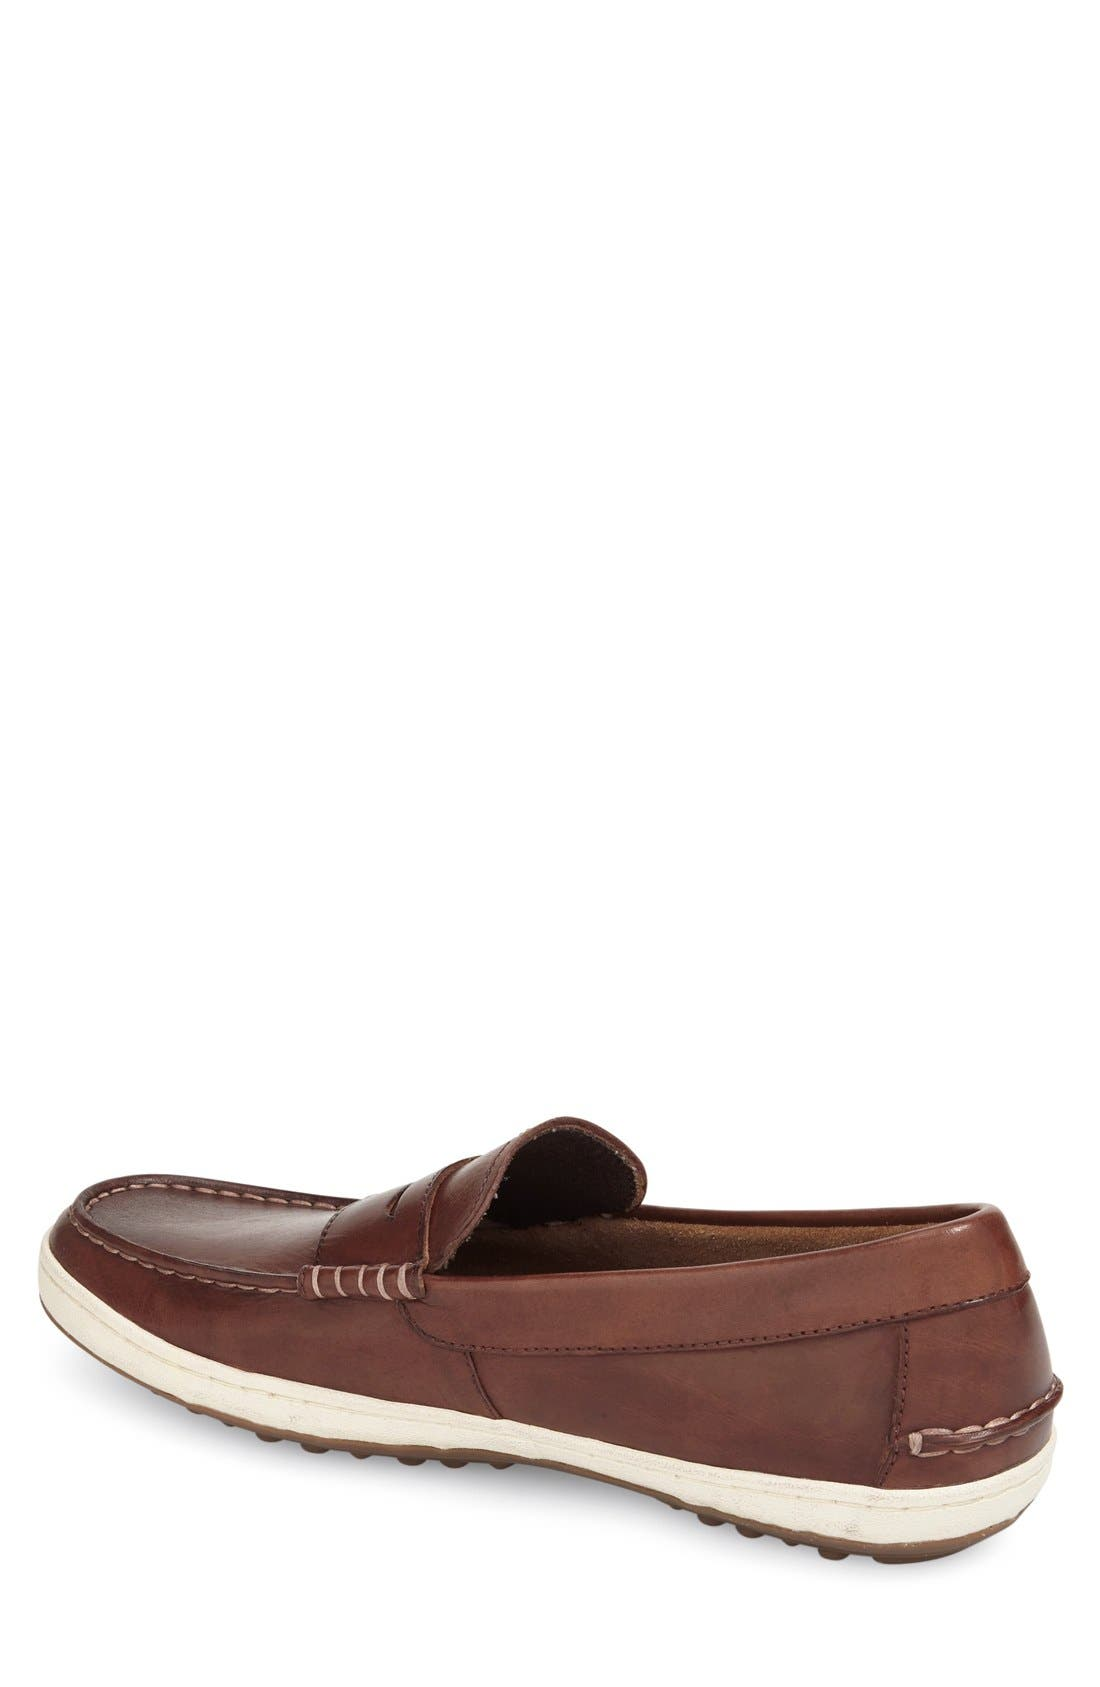 'Pinch Roadtrip' Penny Loafer,                             Alternate thumbnail 2, color,                             Woodbury Leather